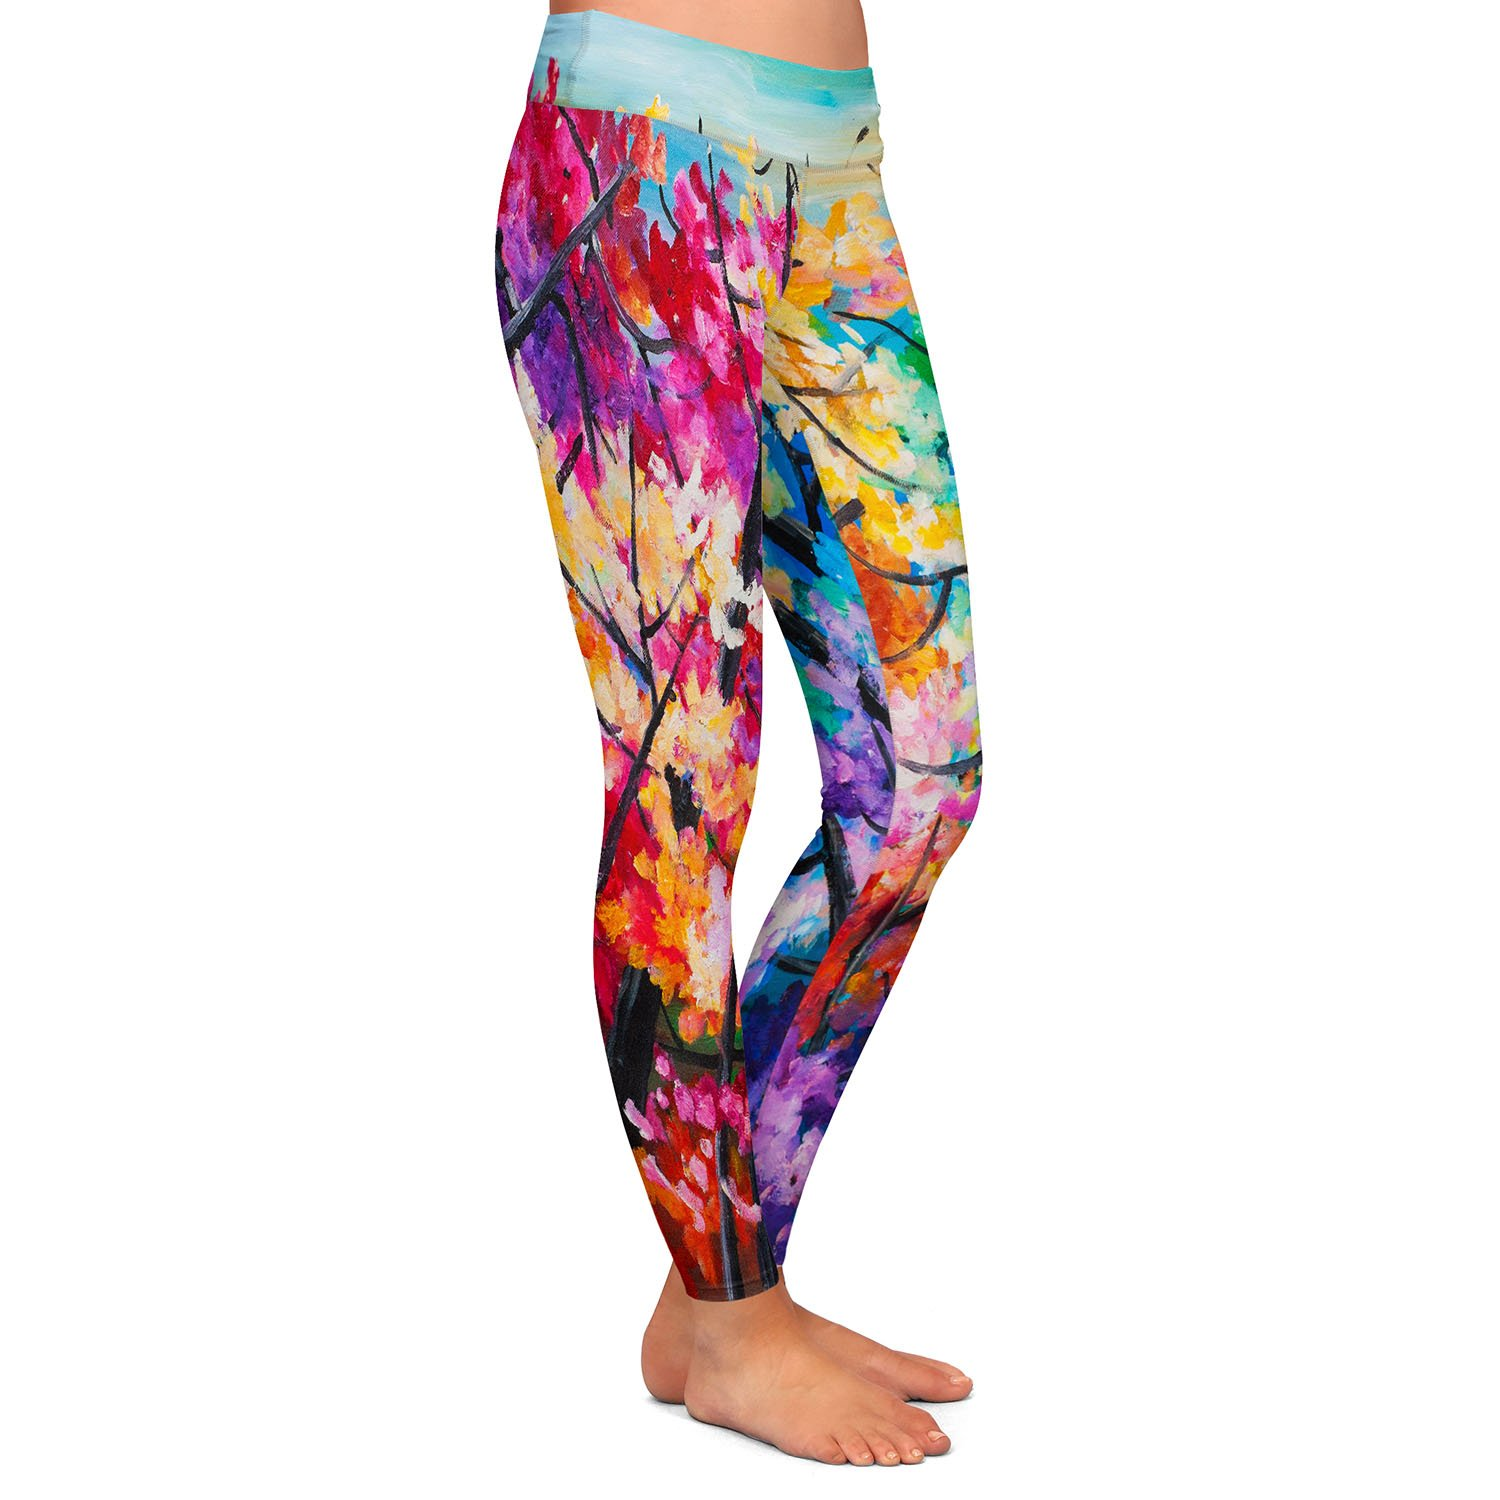 Treetop Colorful 2 Athletic Yoga Leggings from DiaNoche Designs by Lam Fuk Tim